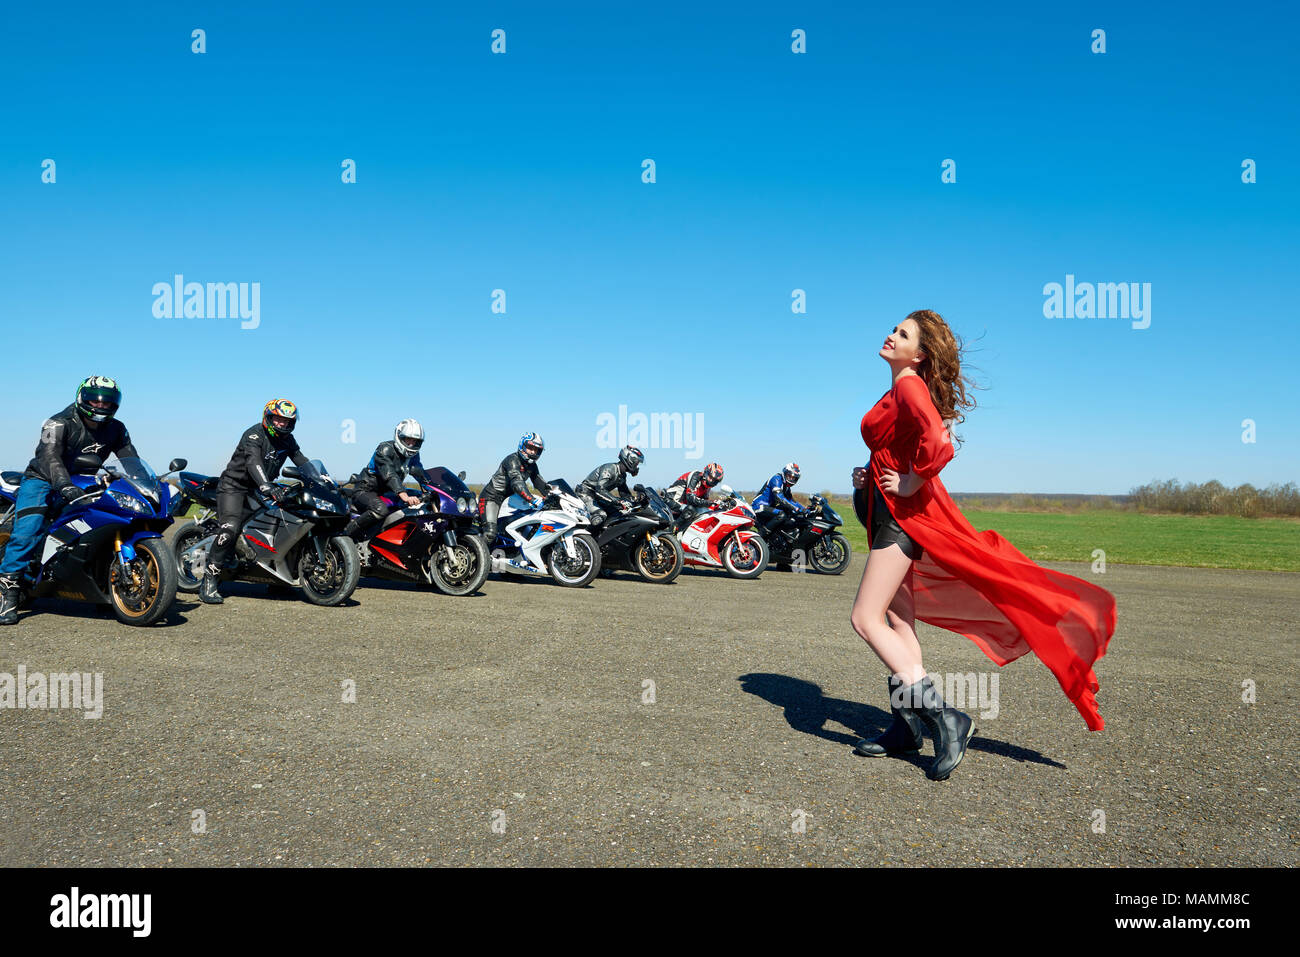 Kiev, Ukraine - 29 March 2017: Attractive beatiful woman wearing red cape is posing near seven bikers sitting on their motorcycles on blue sky background on green field. - Stock Image